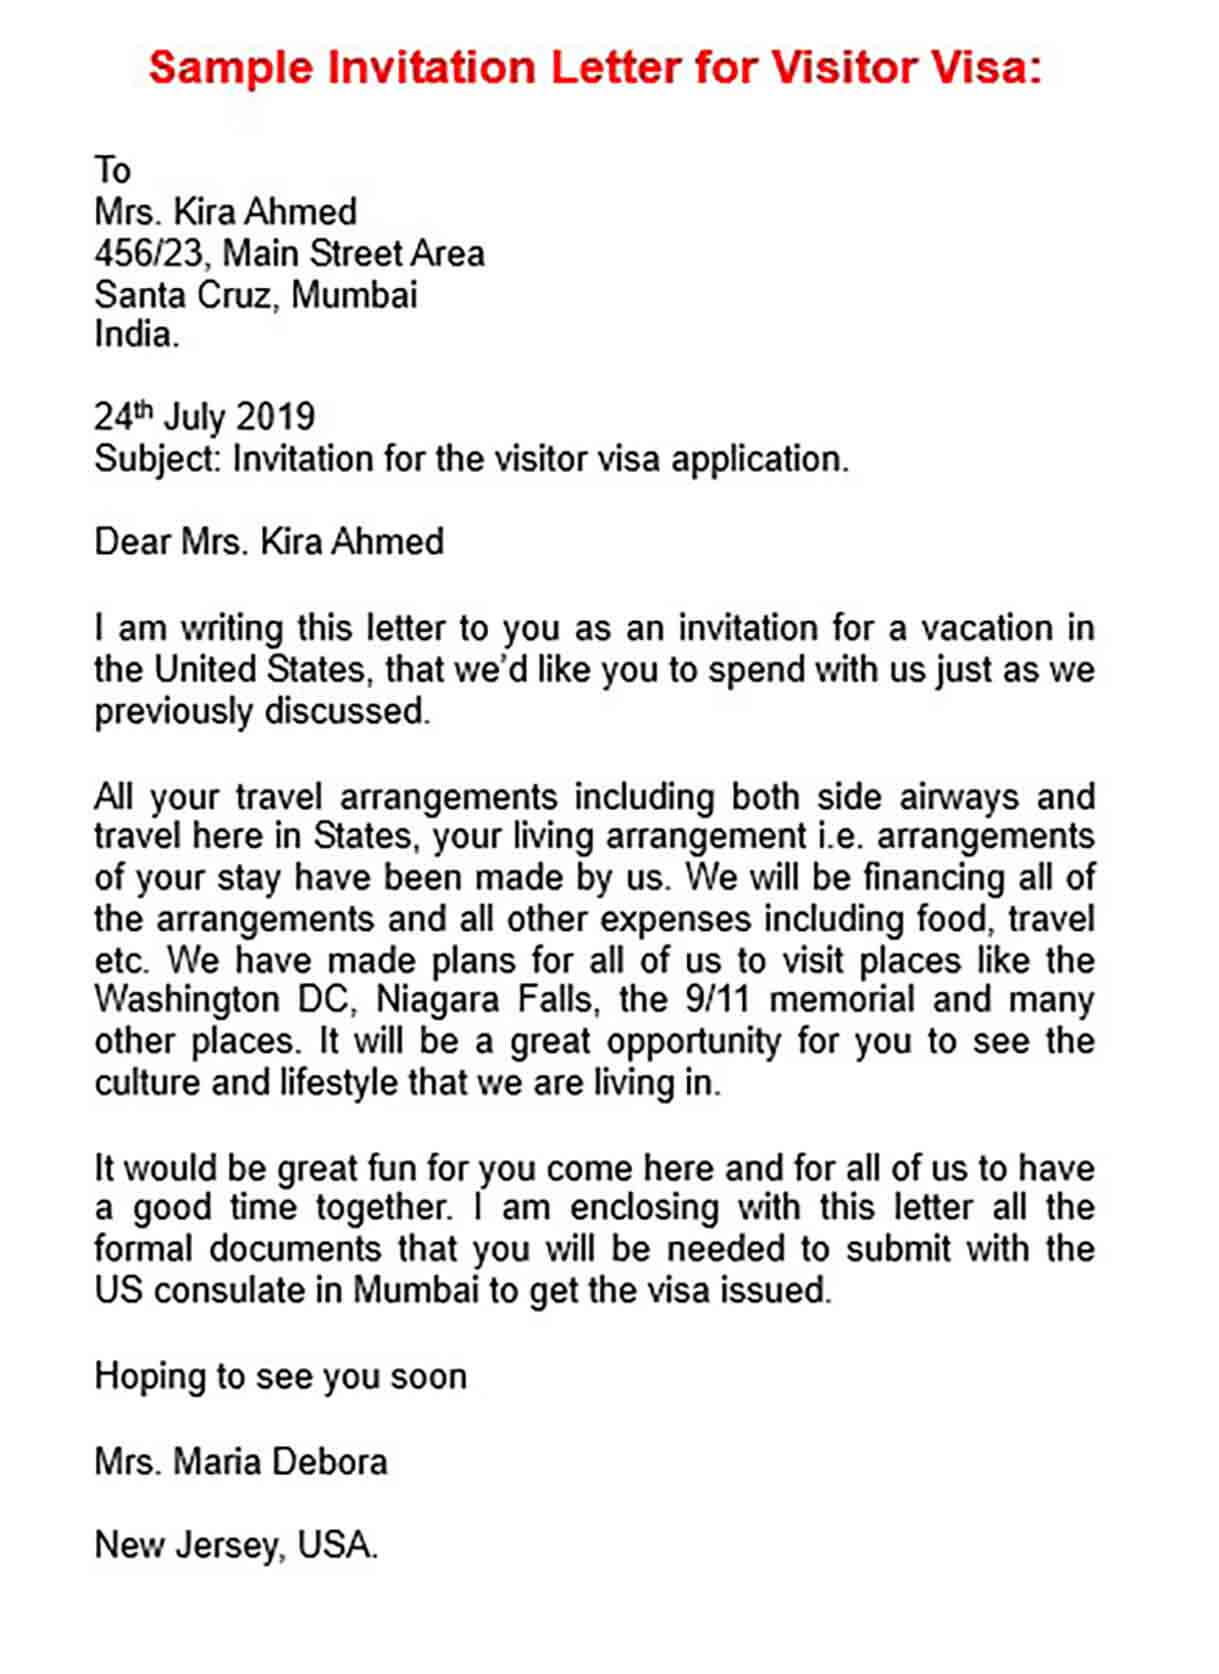 Inviting Letter For Us Visa from moussyusa.com